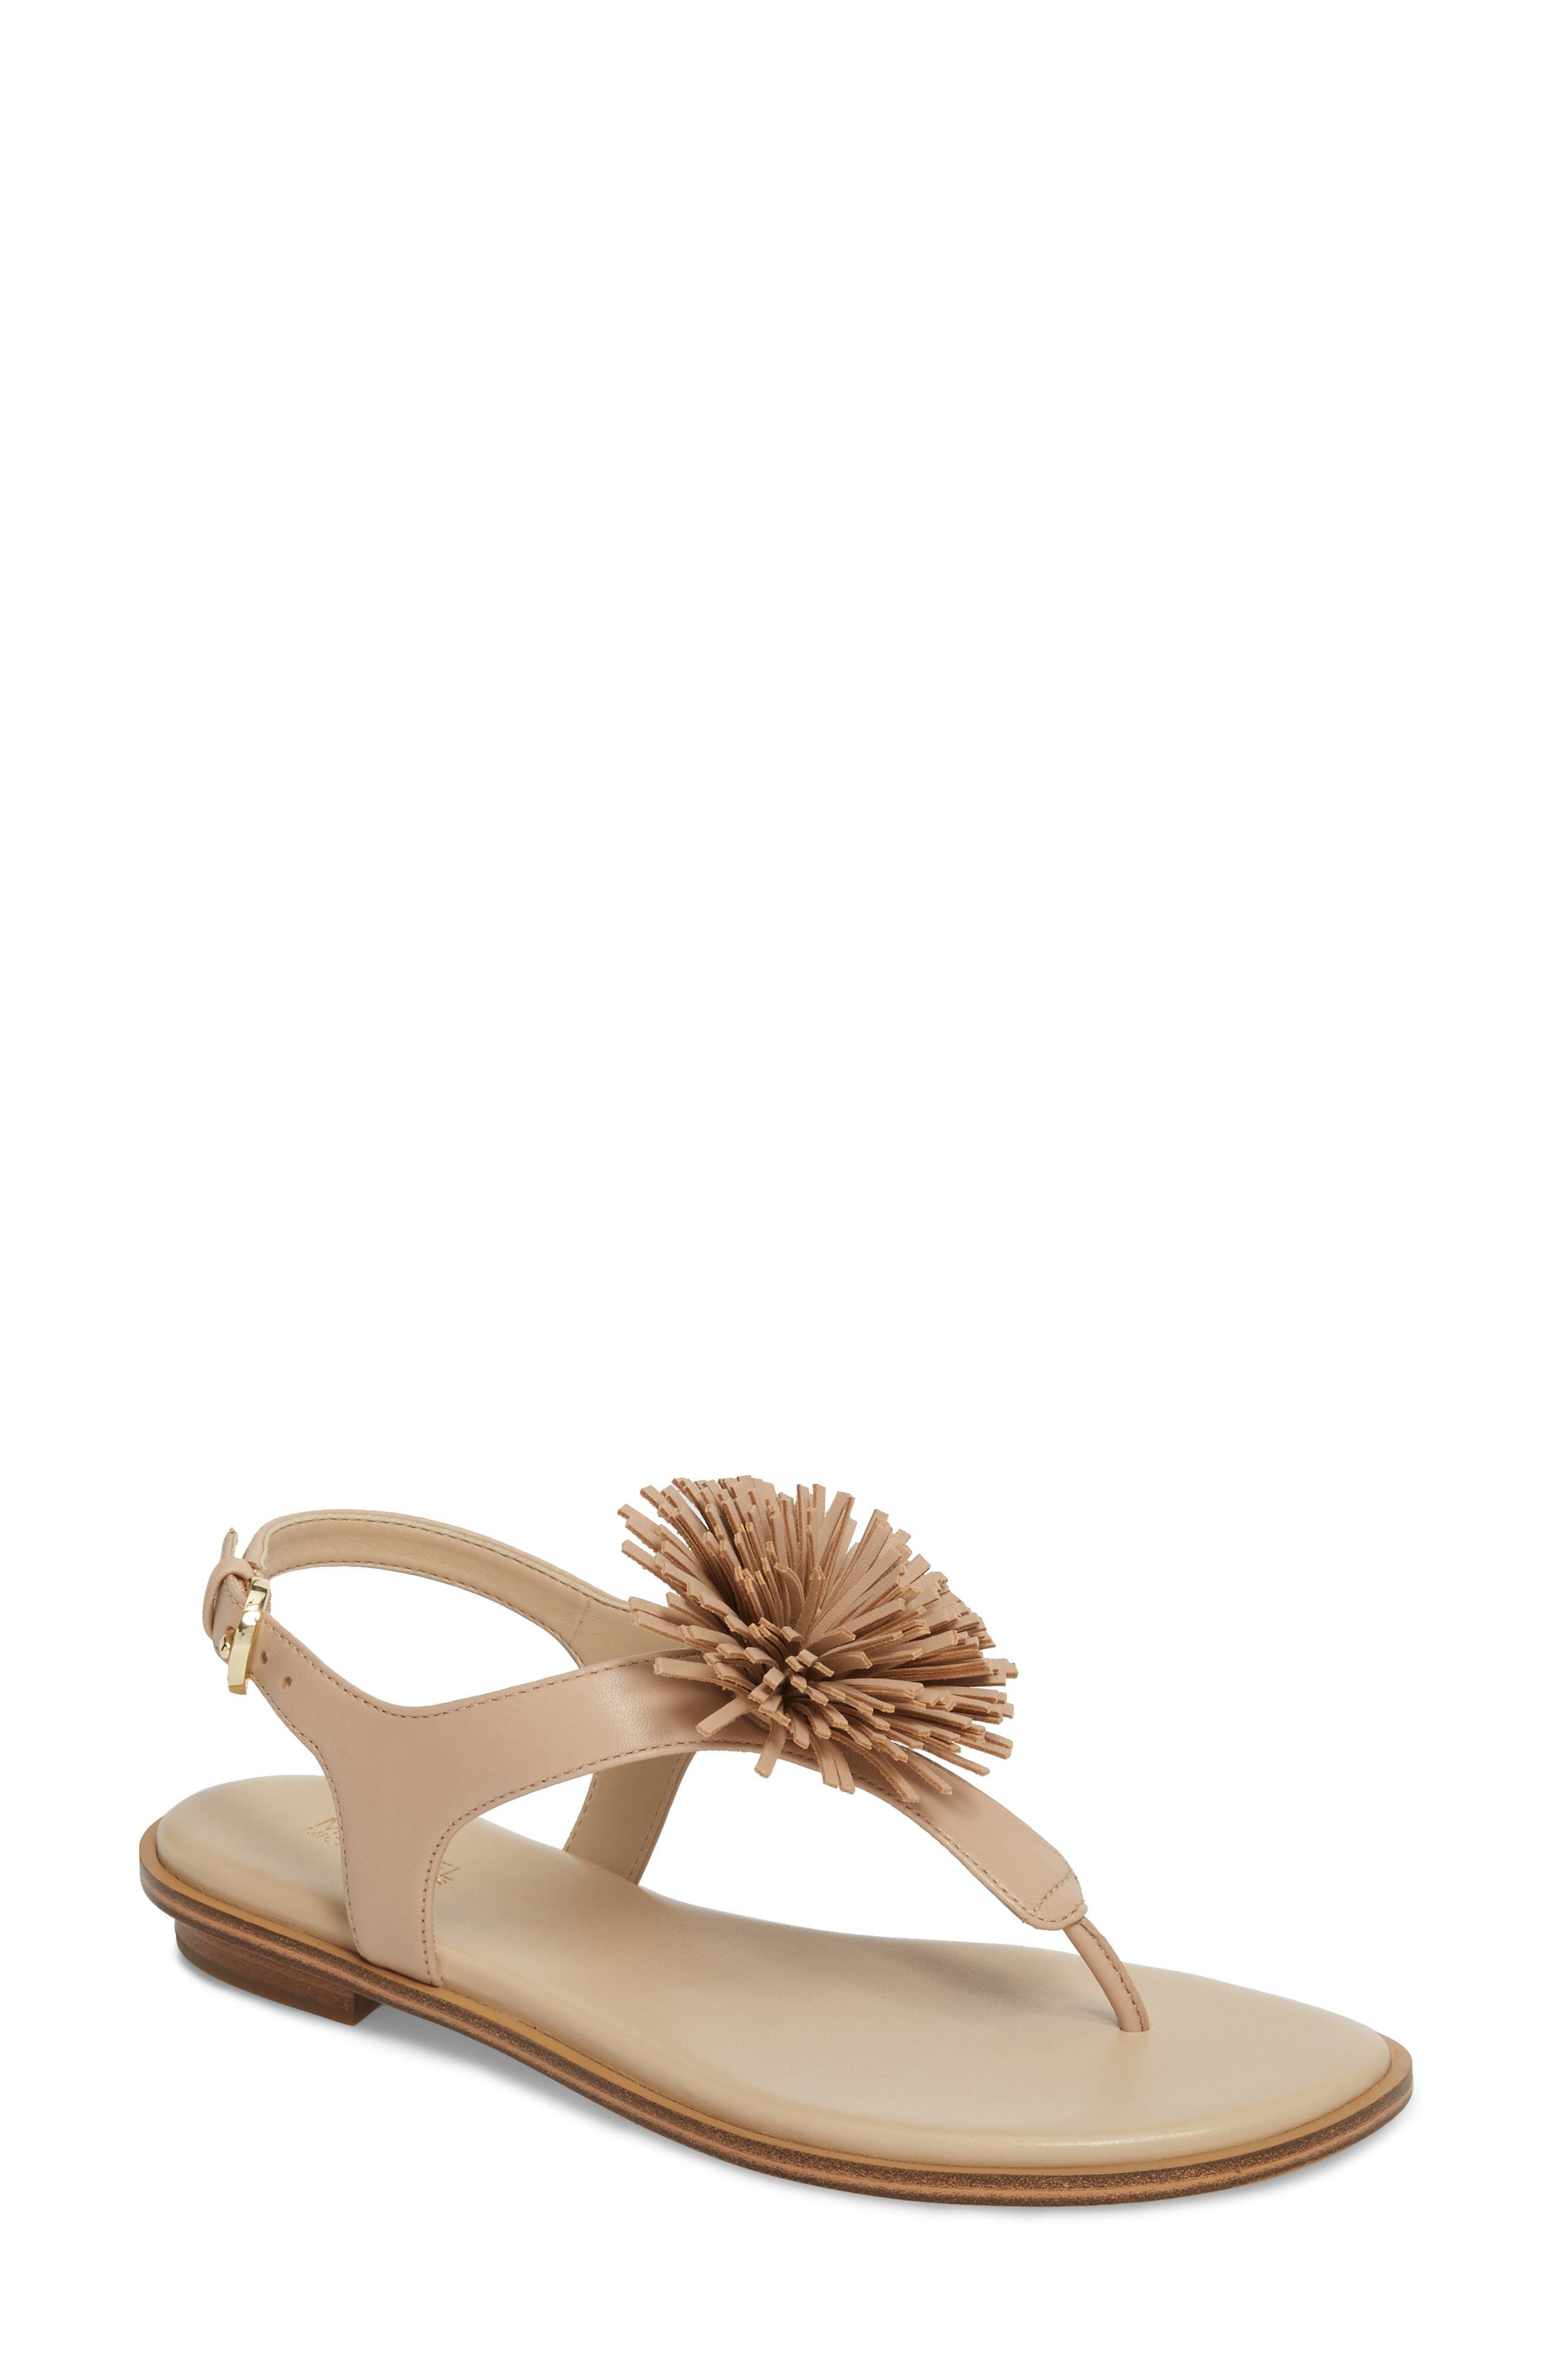 Alternate Image 1 Selected - MICHAEL Michael Kors Lolita Sandal (Women)